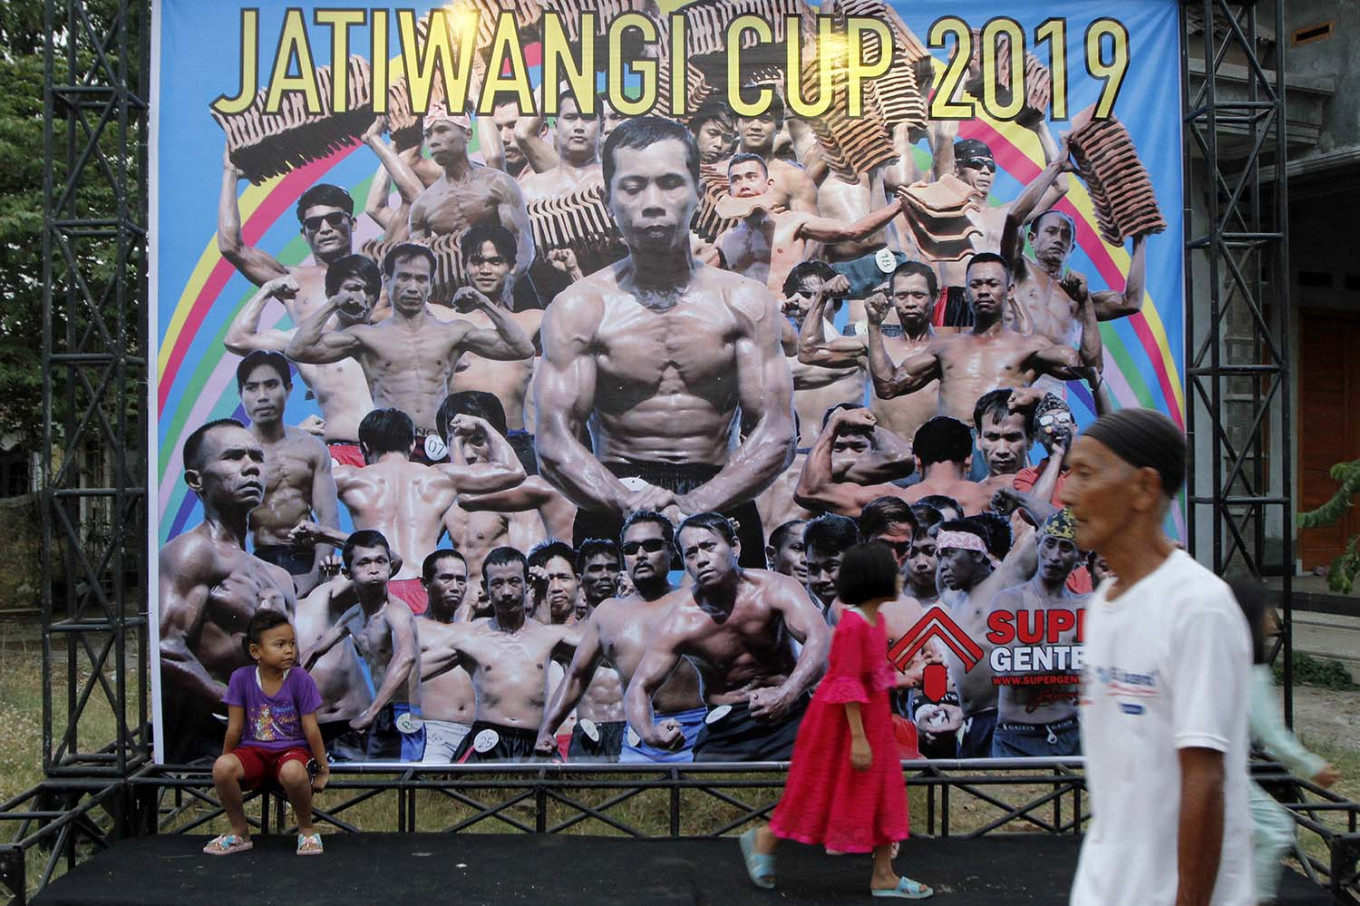 People pass the entrance door of the Dua Saudara jebor in Burujul Kulon, Majalengka, West Java, where the 2019 Jatiwangi Cup bodybuilder championship was being held as a way of improving solidarity among the workers of some 200 traditional roof tile factories in Jatiwangi district. JP/Arya Dipa